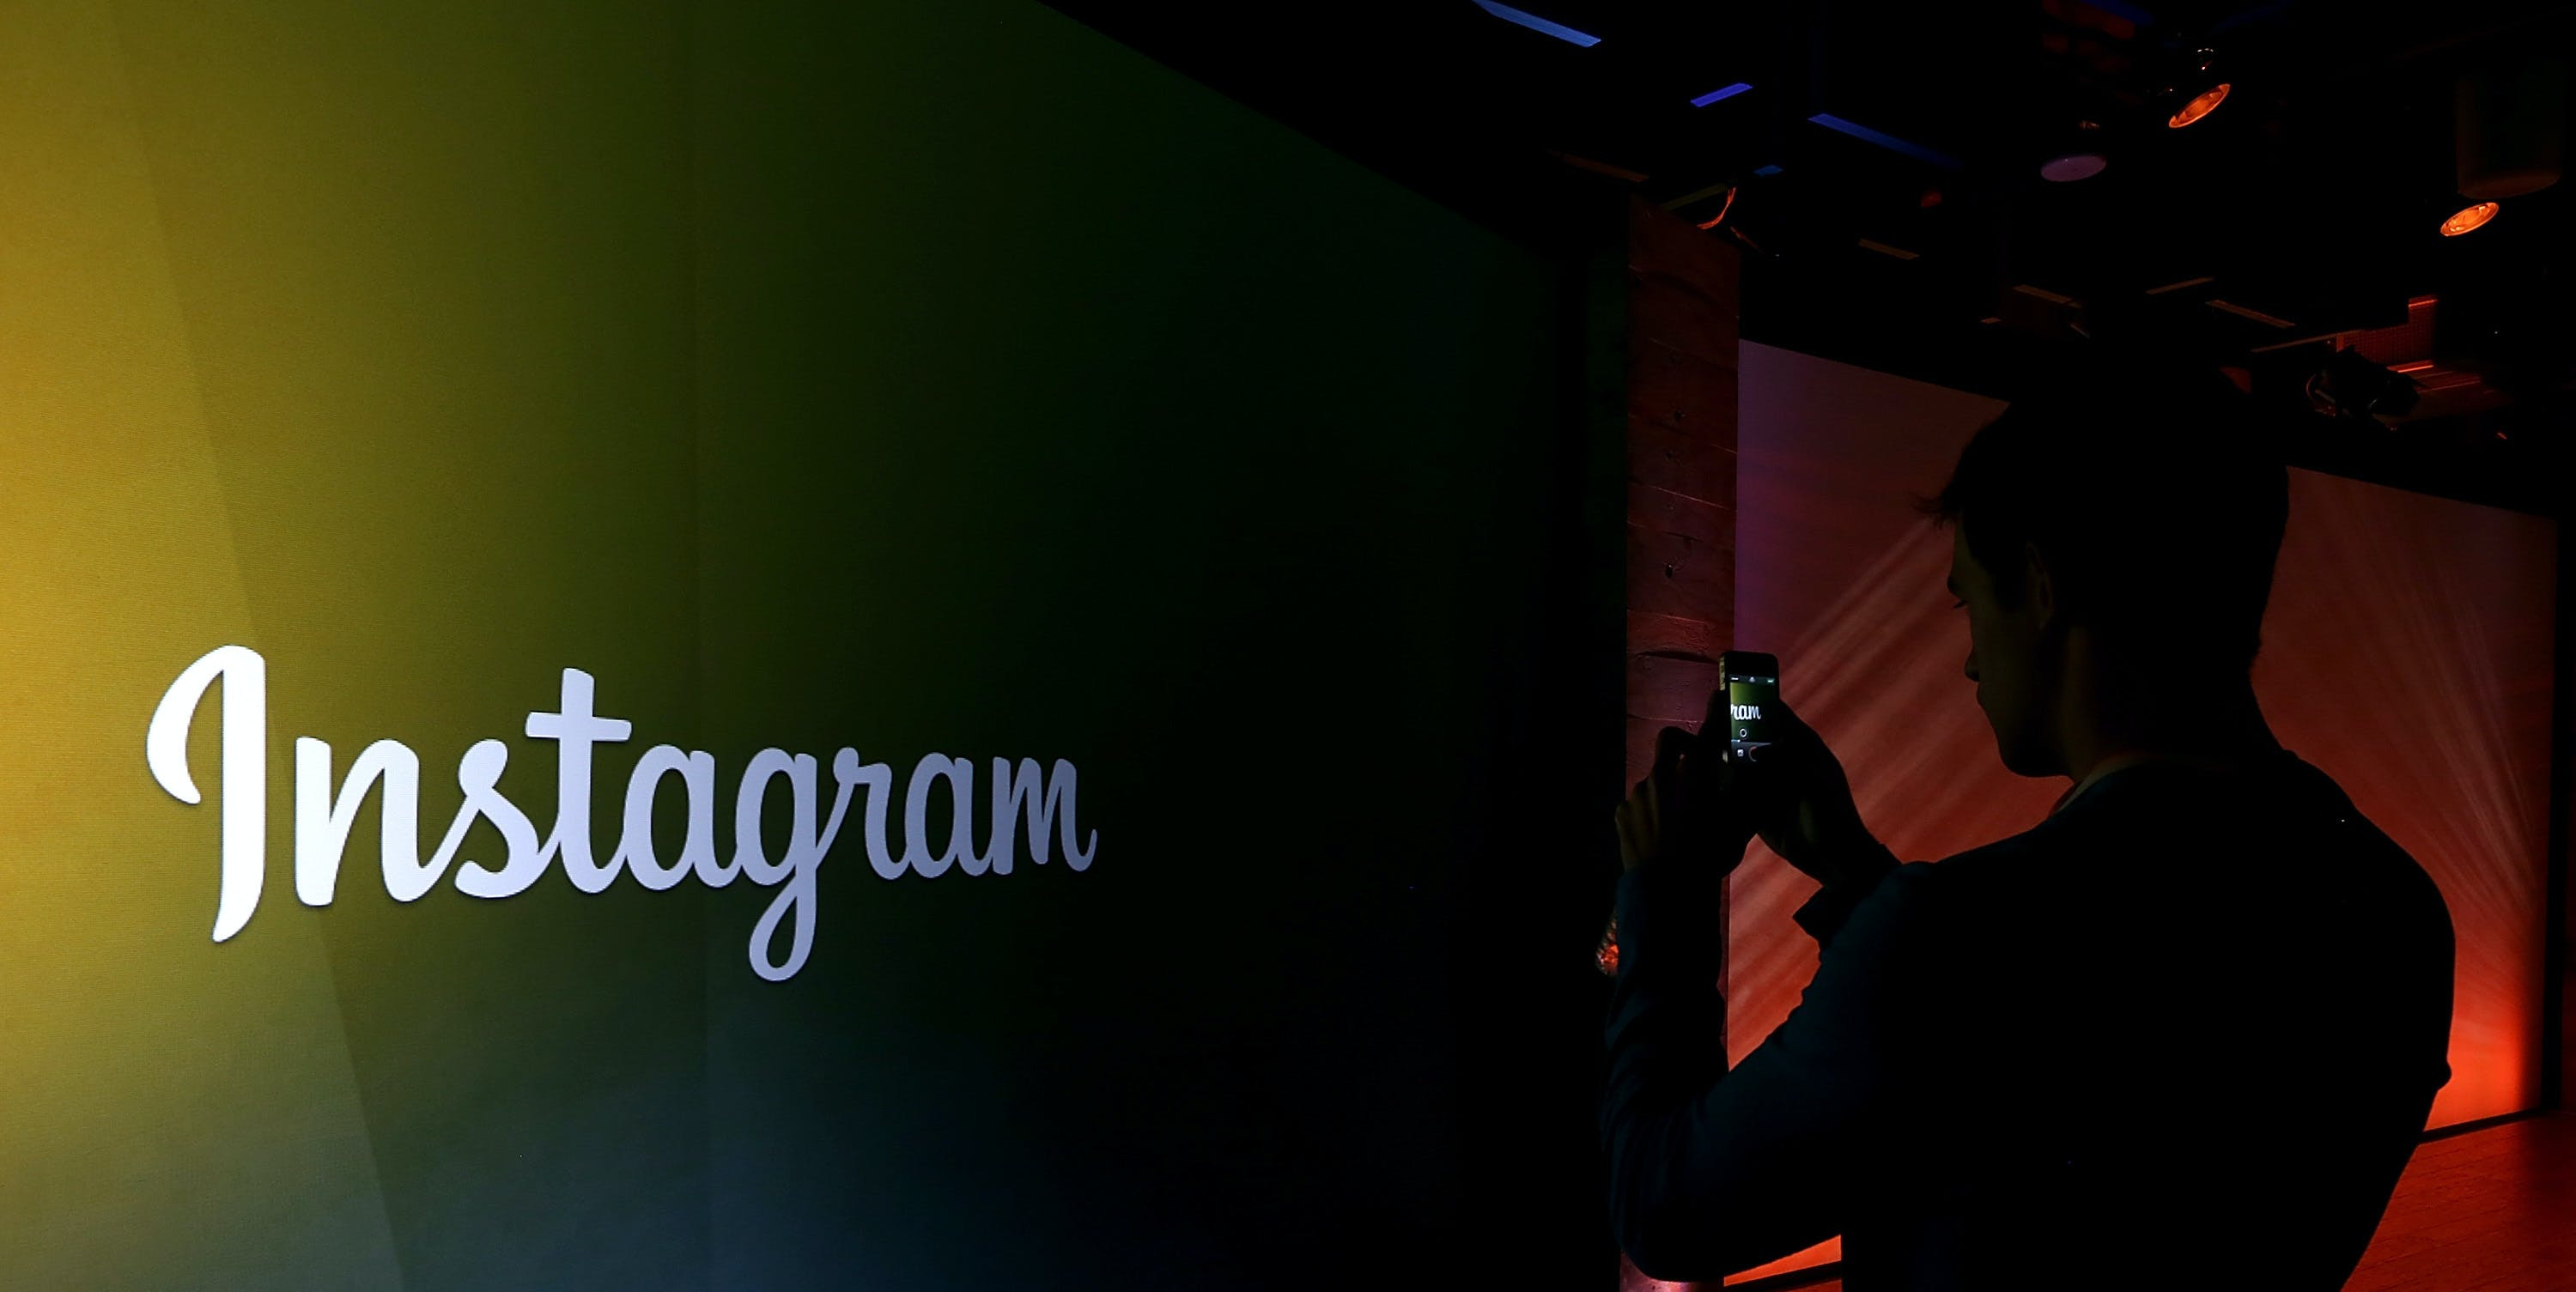 MENLO PARK, CA - JUNE 20:  An attendee takes a photo of the instagram logo during a press event at Facebook headquarters on June 20, 2013 in Menlo Park, California. Facebook announced that its photo-sharing subsidiary Instagram will now allow users to take and share video.  (Photo by Justin Sullivan/Getty Images)